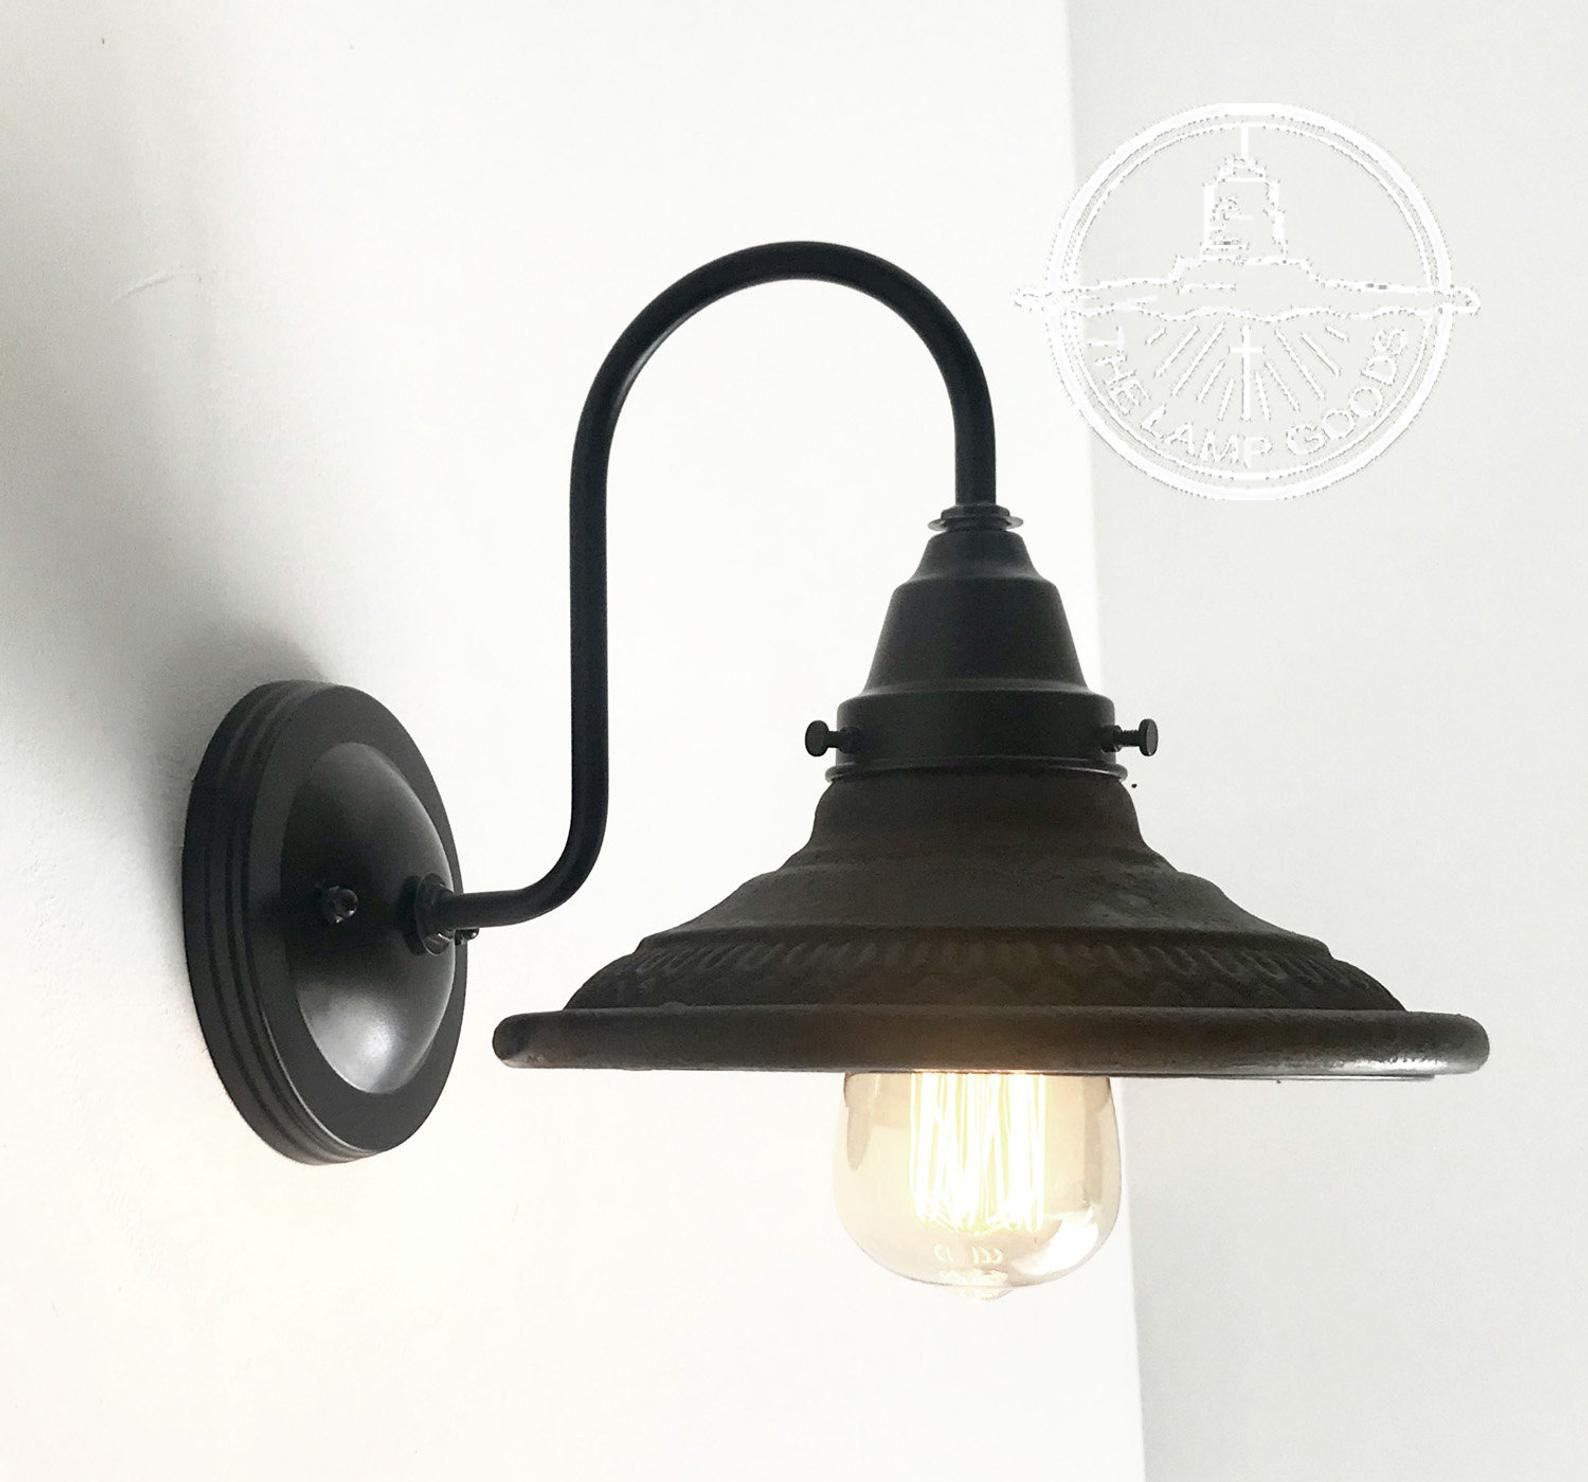 Rustic INDUSTRIAL Wall Light Fixture Sconce Ceiling